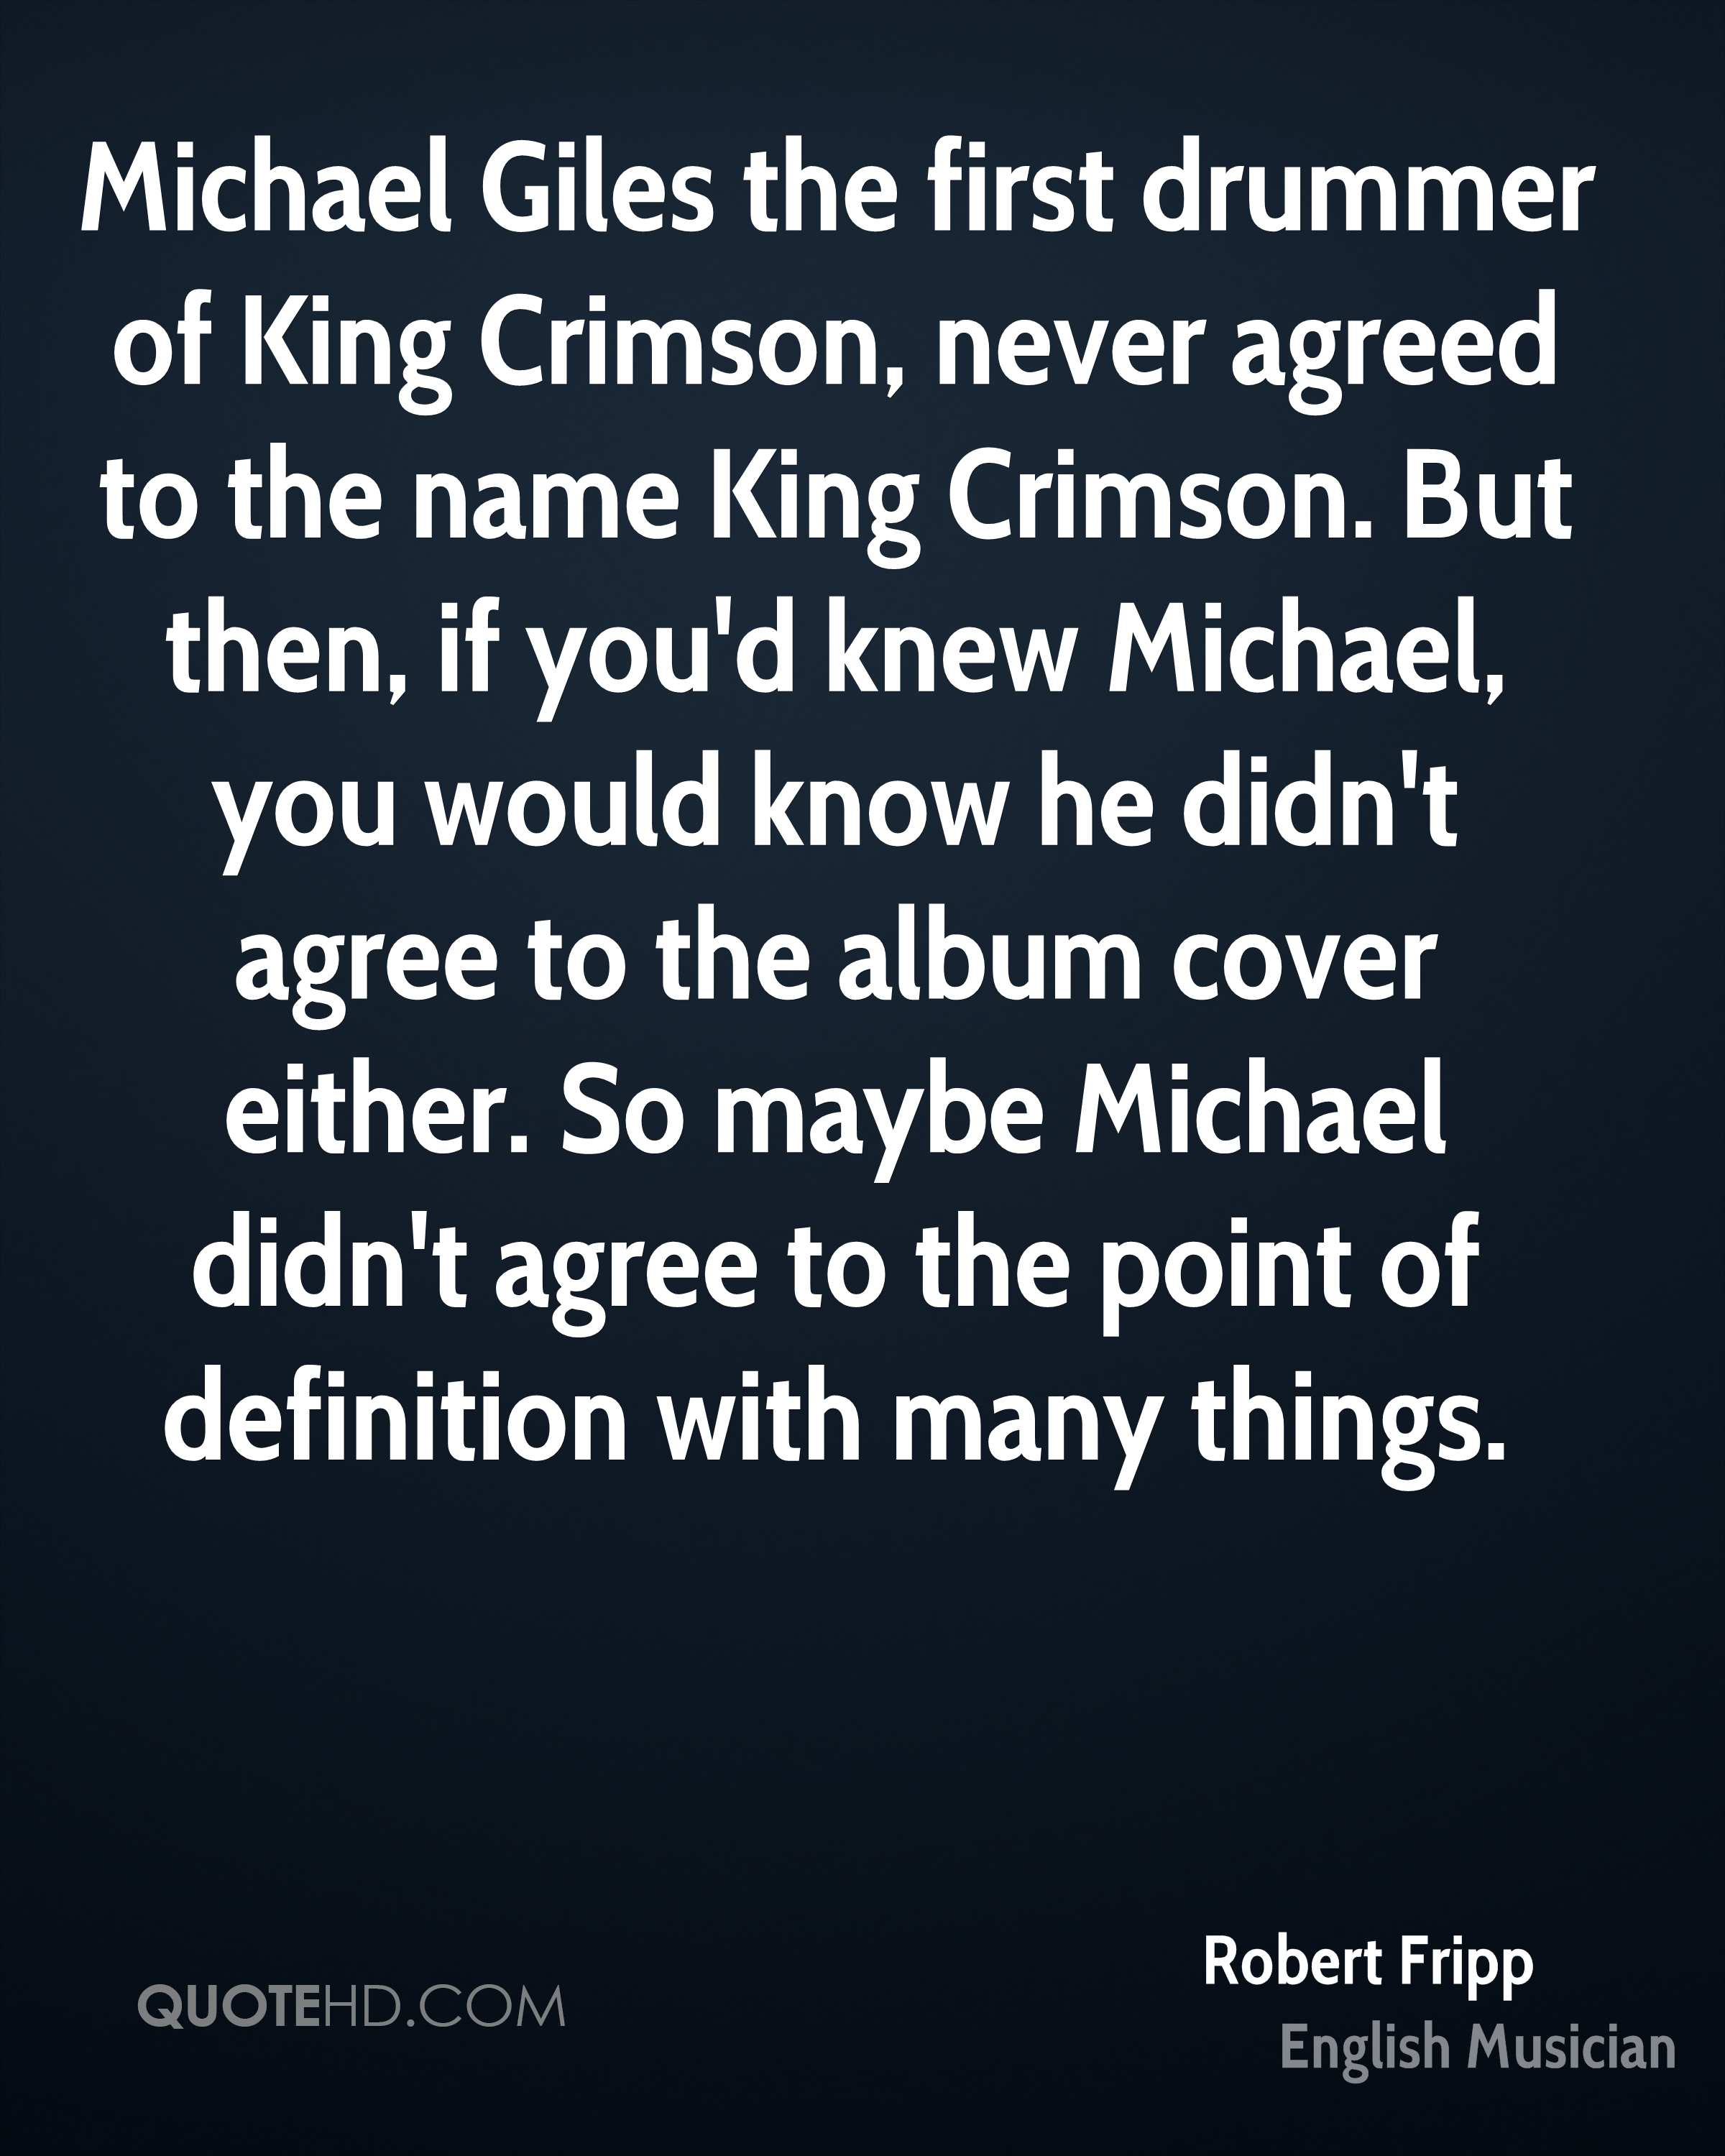 Michael Giles the first drummer of King Crimson, never agreed to the name King Crimson. But then, if you'd knew Michael, you would know he didn't agree to the album cover either. So maybe Michael didn't agree to the point of definition with many things.